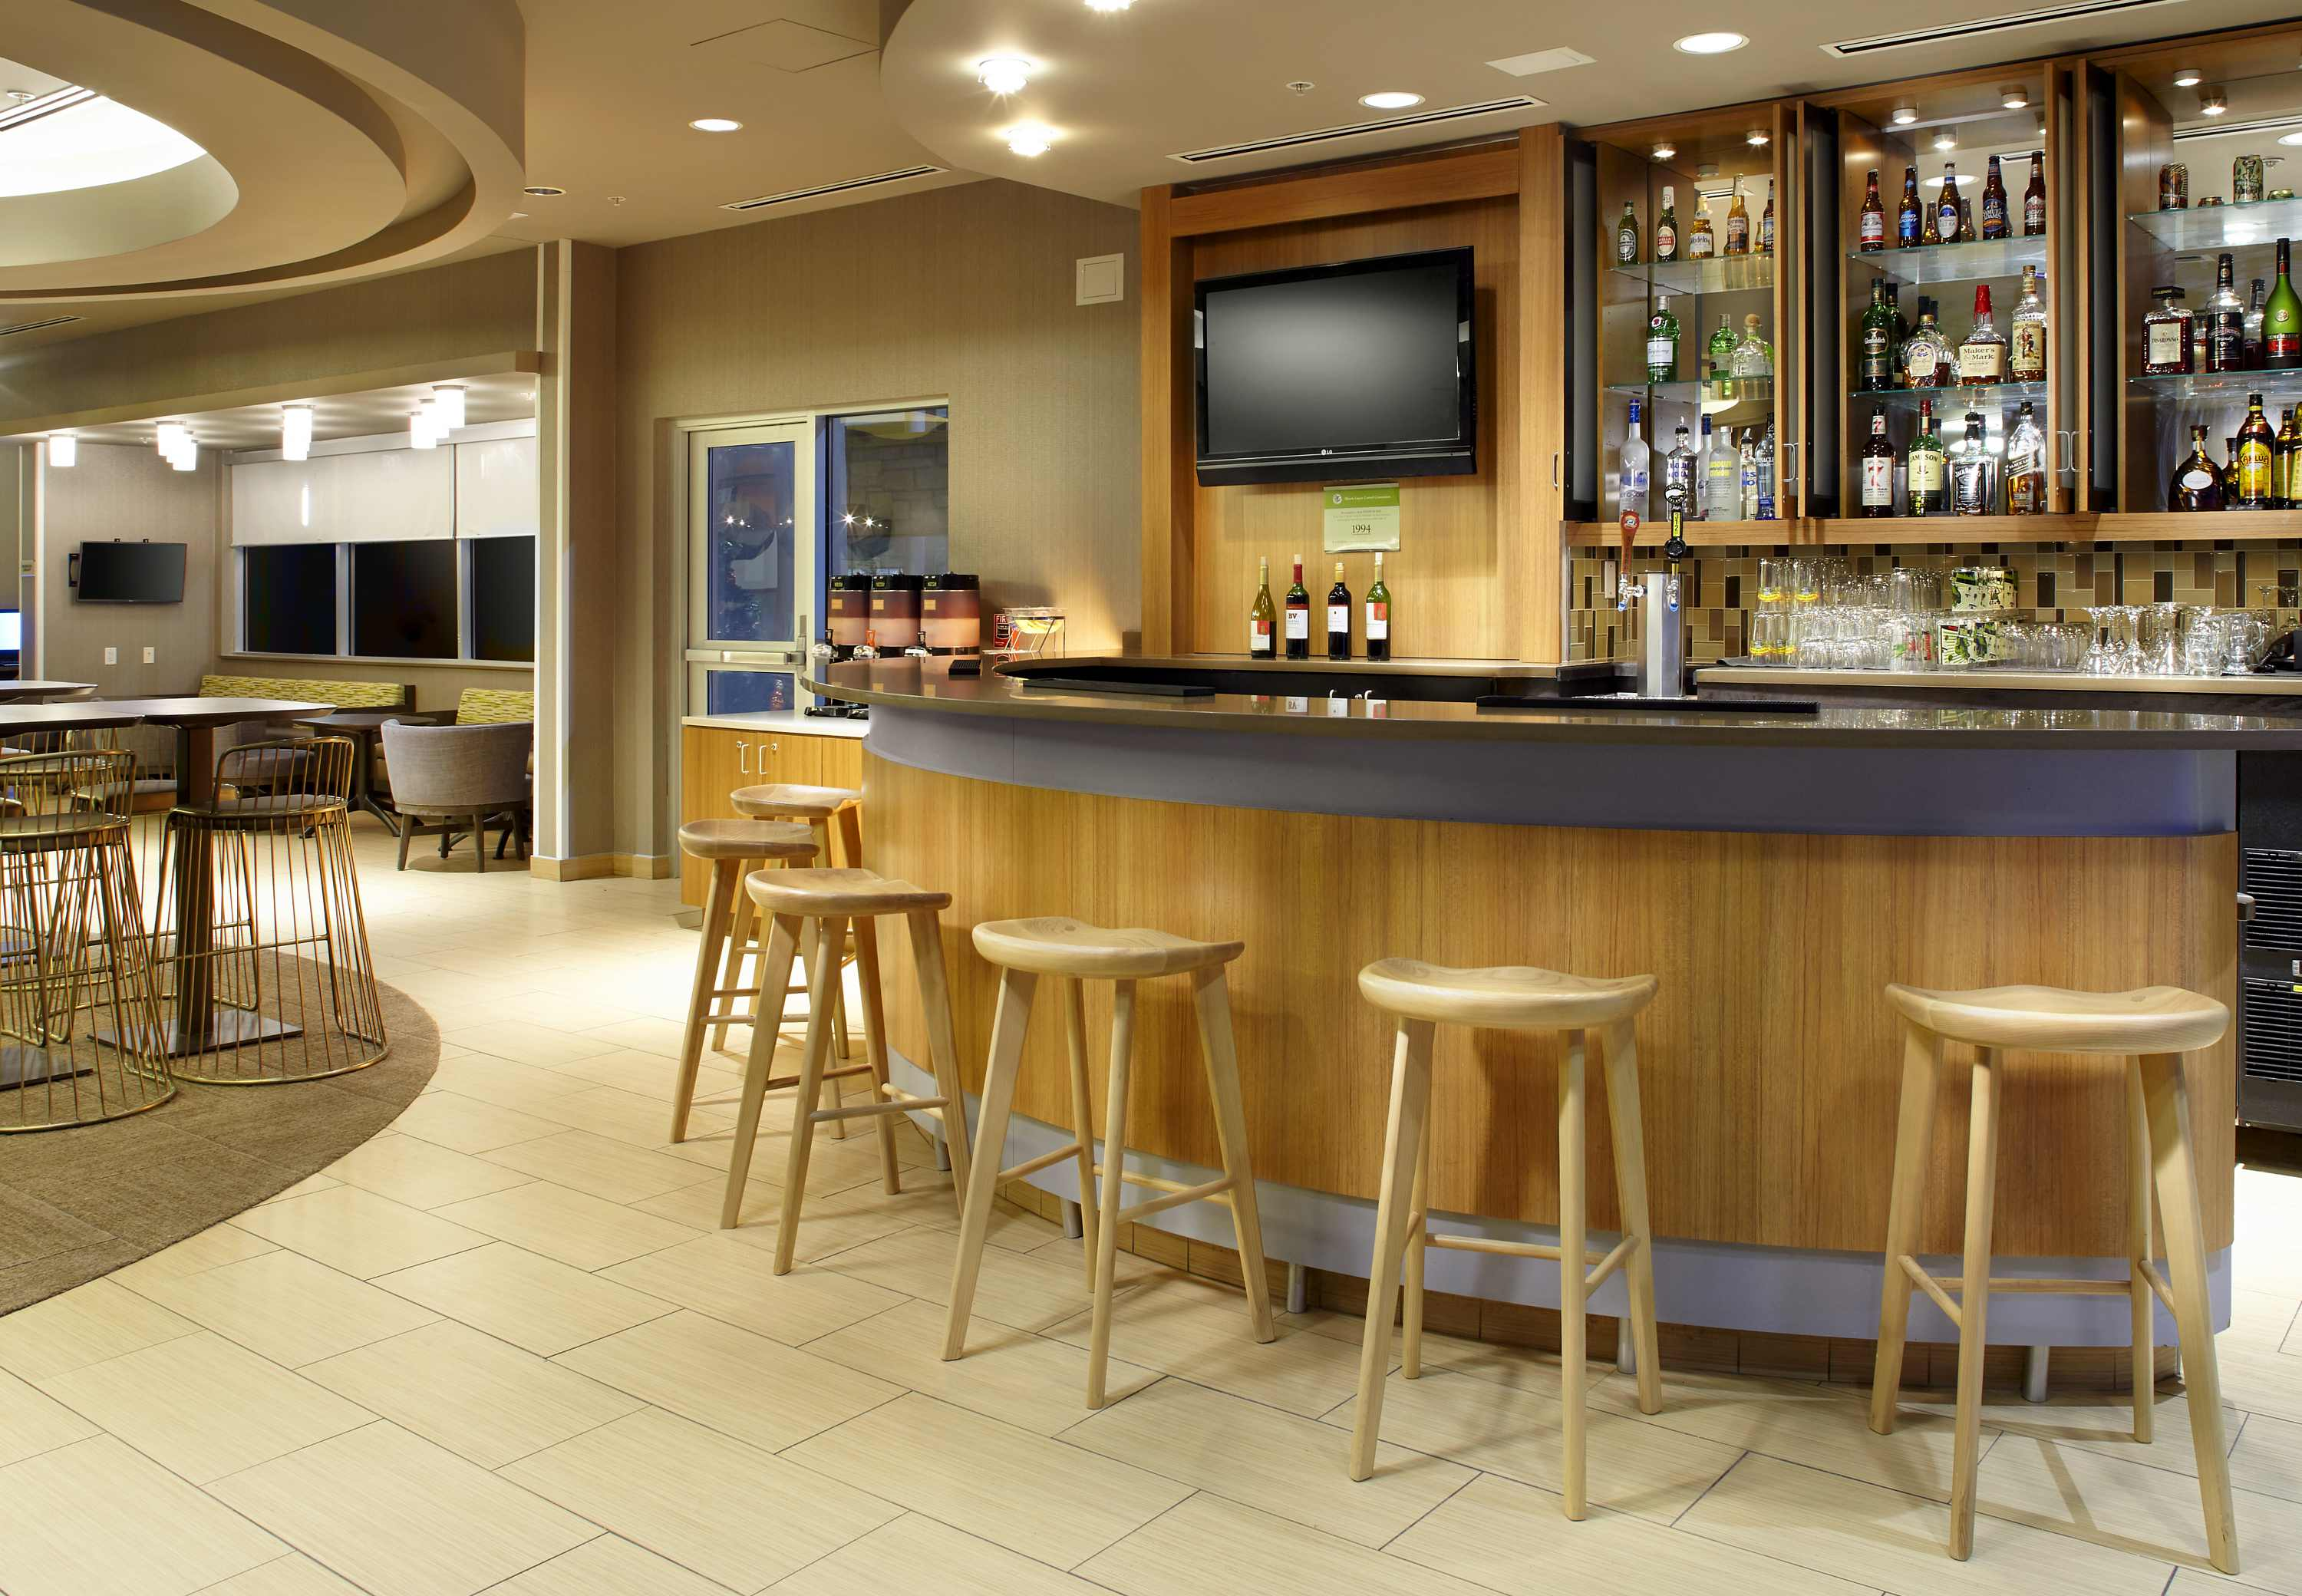 SpringHill Suites by Marriott Chicago Waukegan/Gurnee image 10